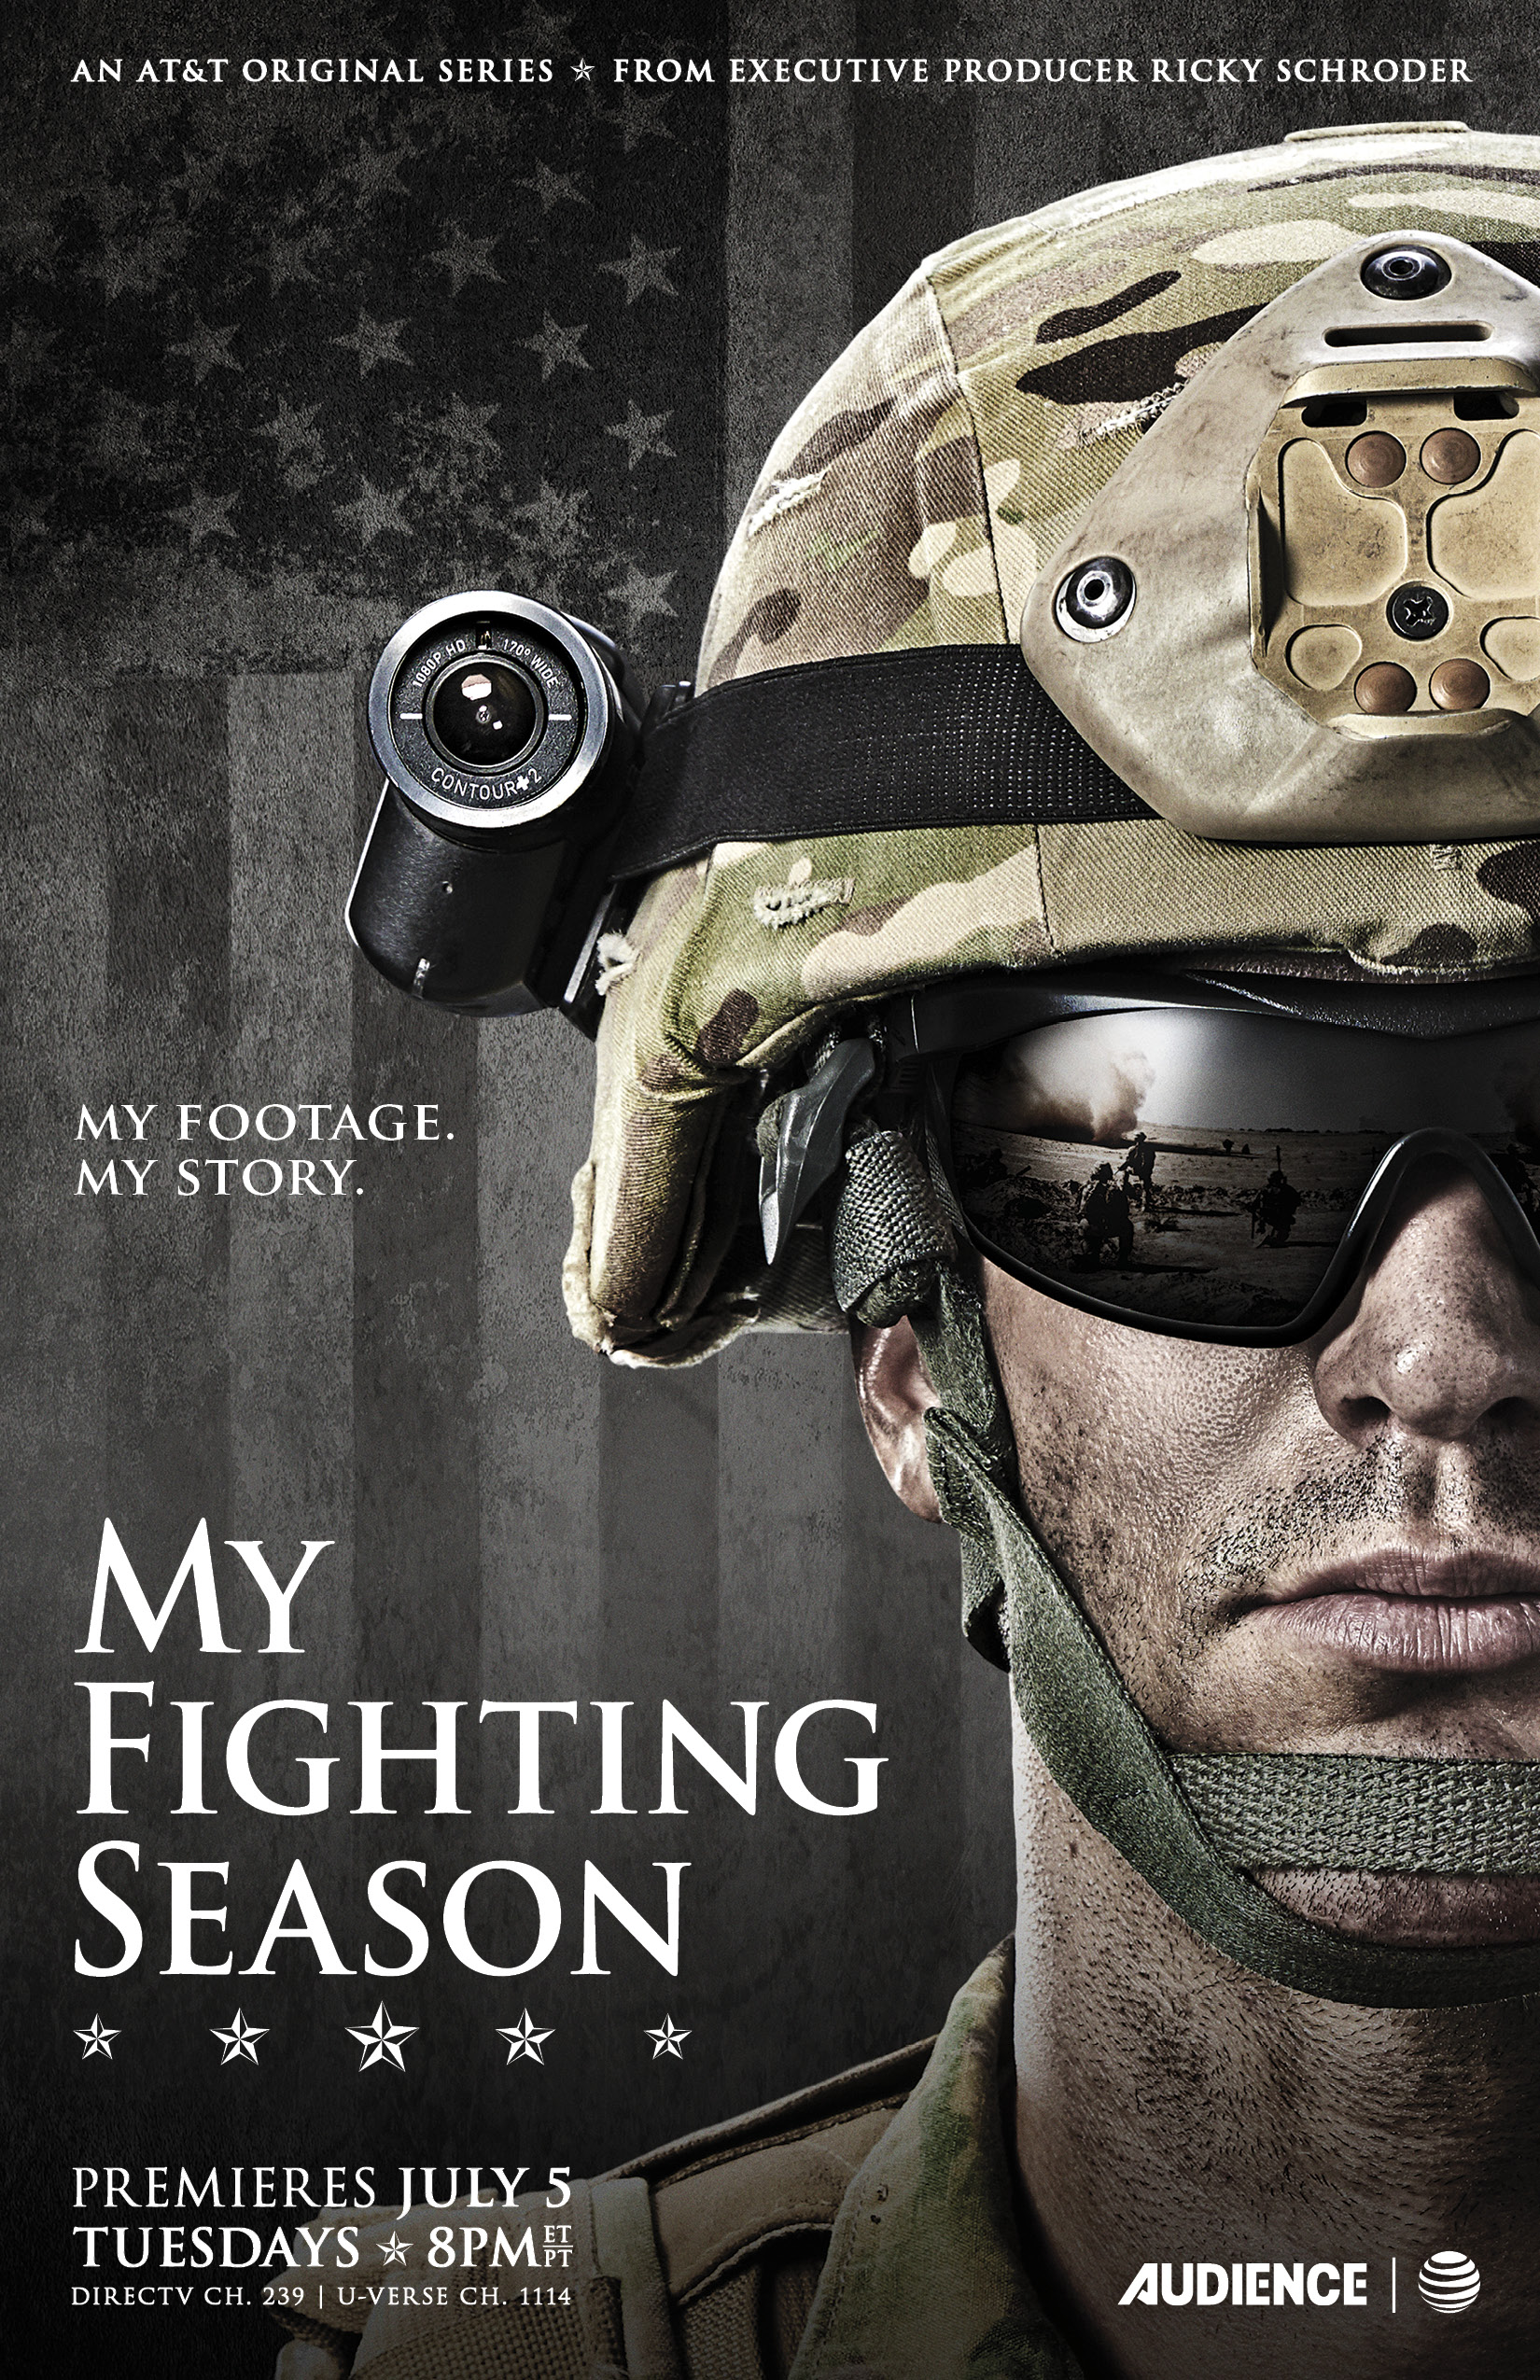 AUD1778_MyFightingSeason_Keyart_M2_LR